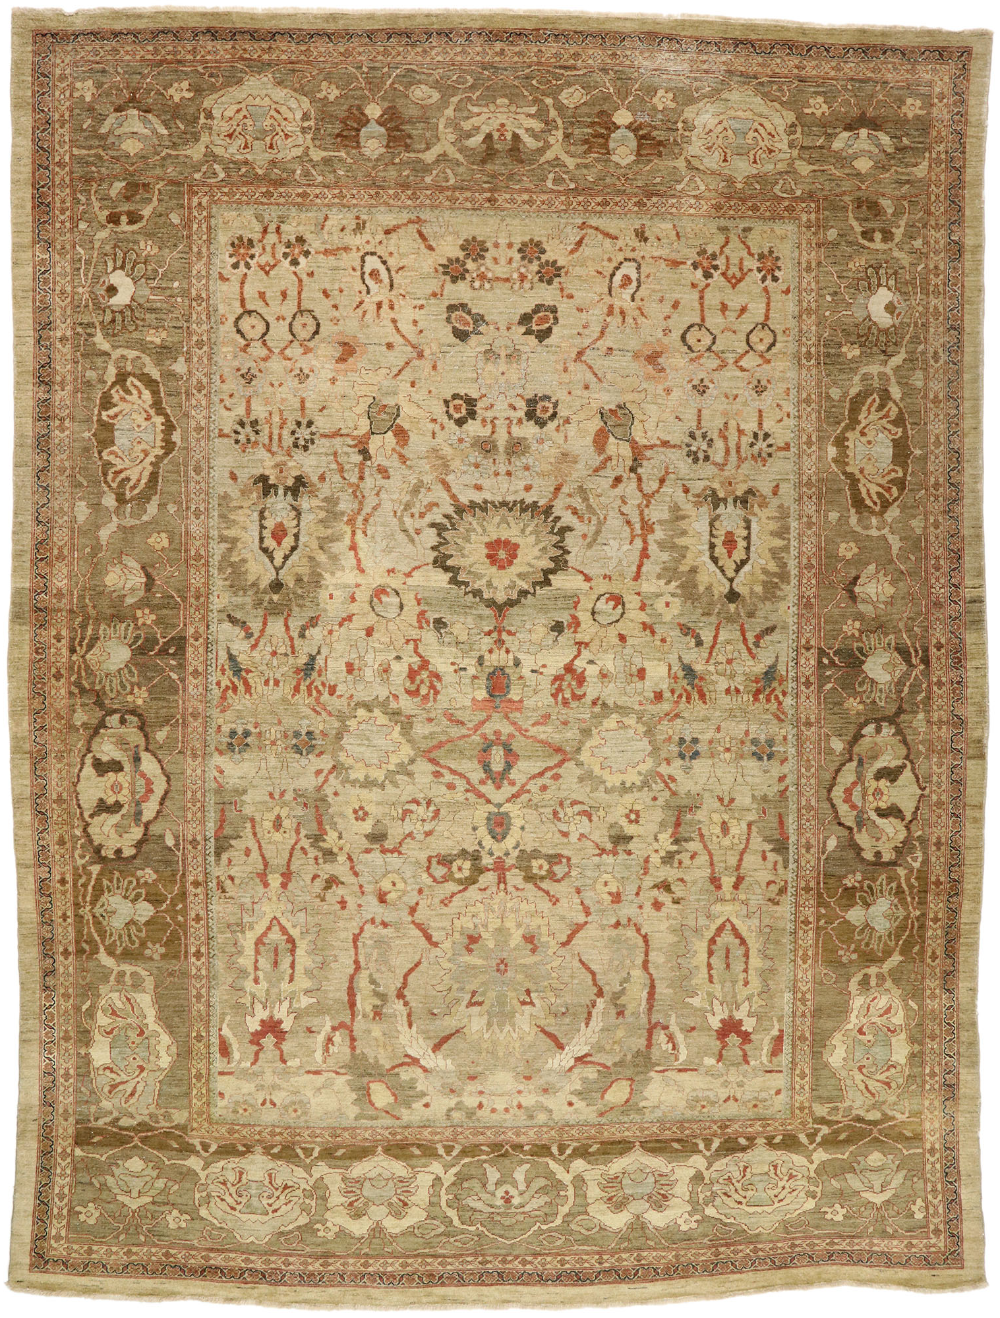 13 X 17 Vintage Persian Sultanabad Palace Rug 77507 In 2020 Vintage Persian Rug Rugs Sultanabad Rug